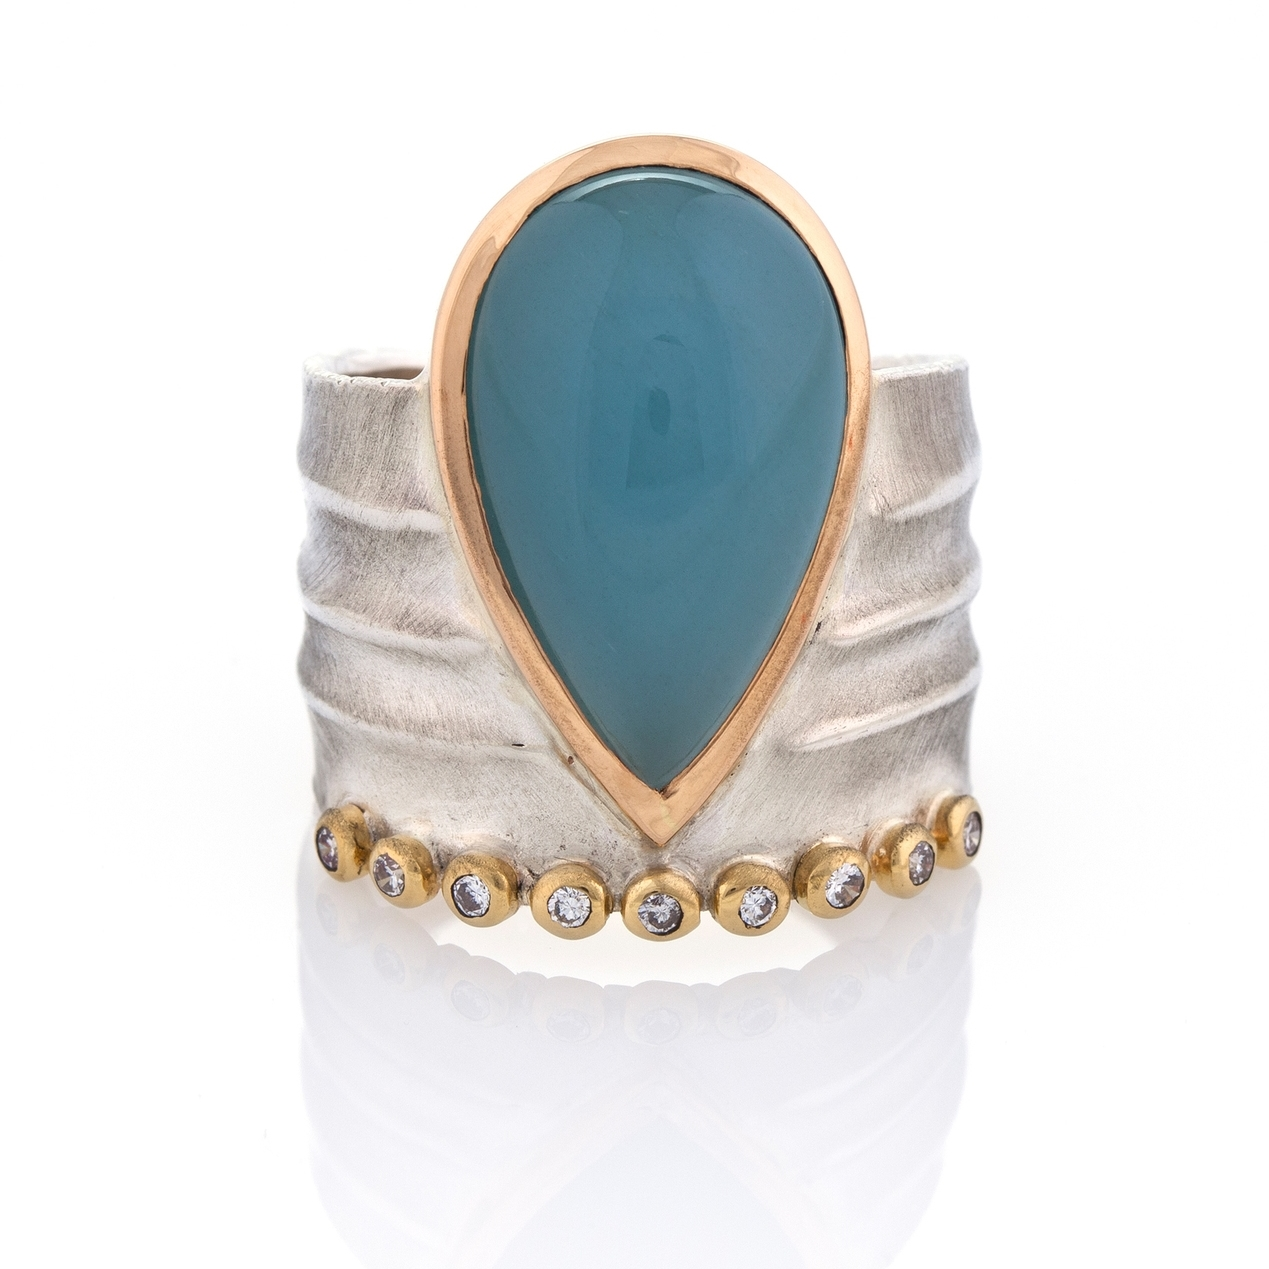 Aqua Crown Ring by Danielle Miller Jewelry : aquamarine, diamonds, sterling, 14k & 18k gold.